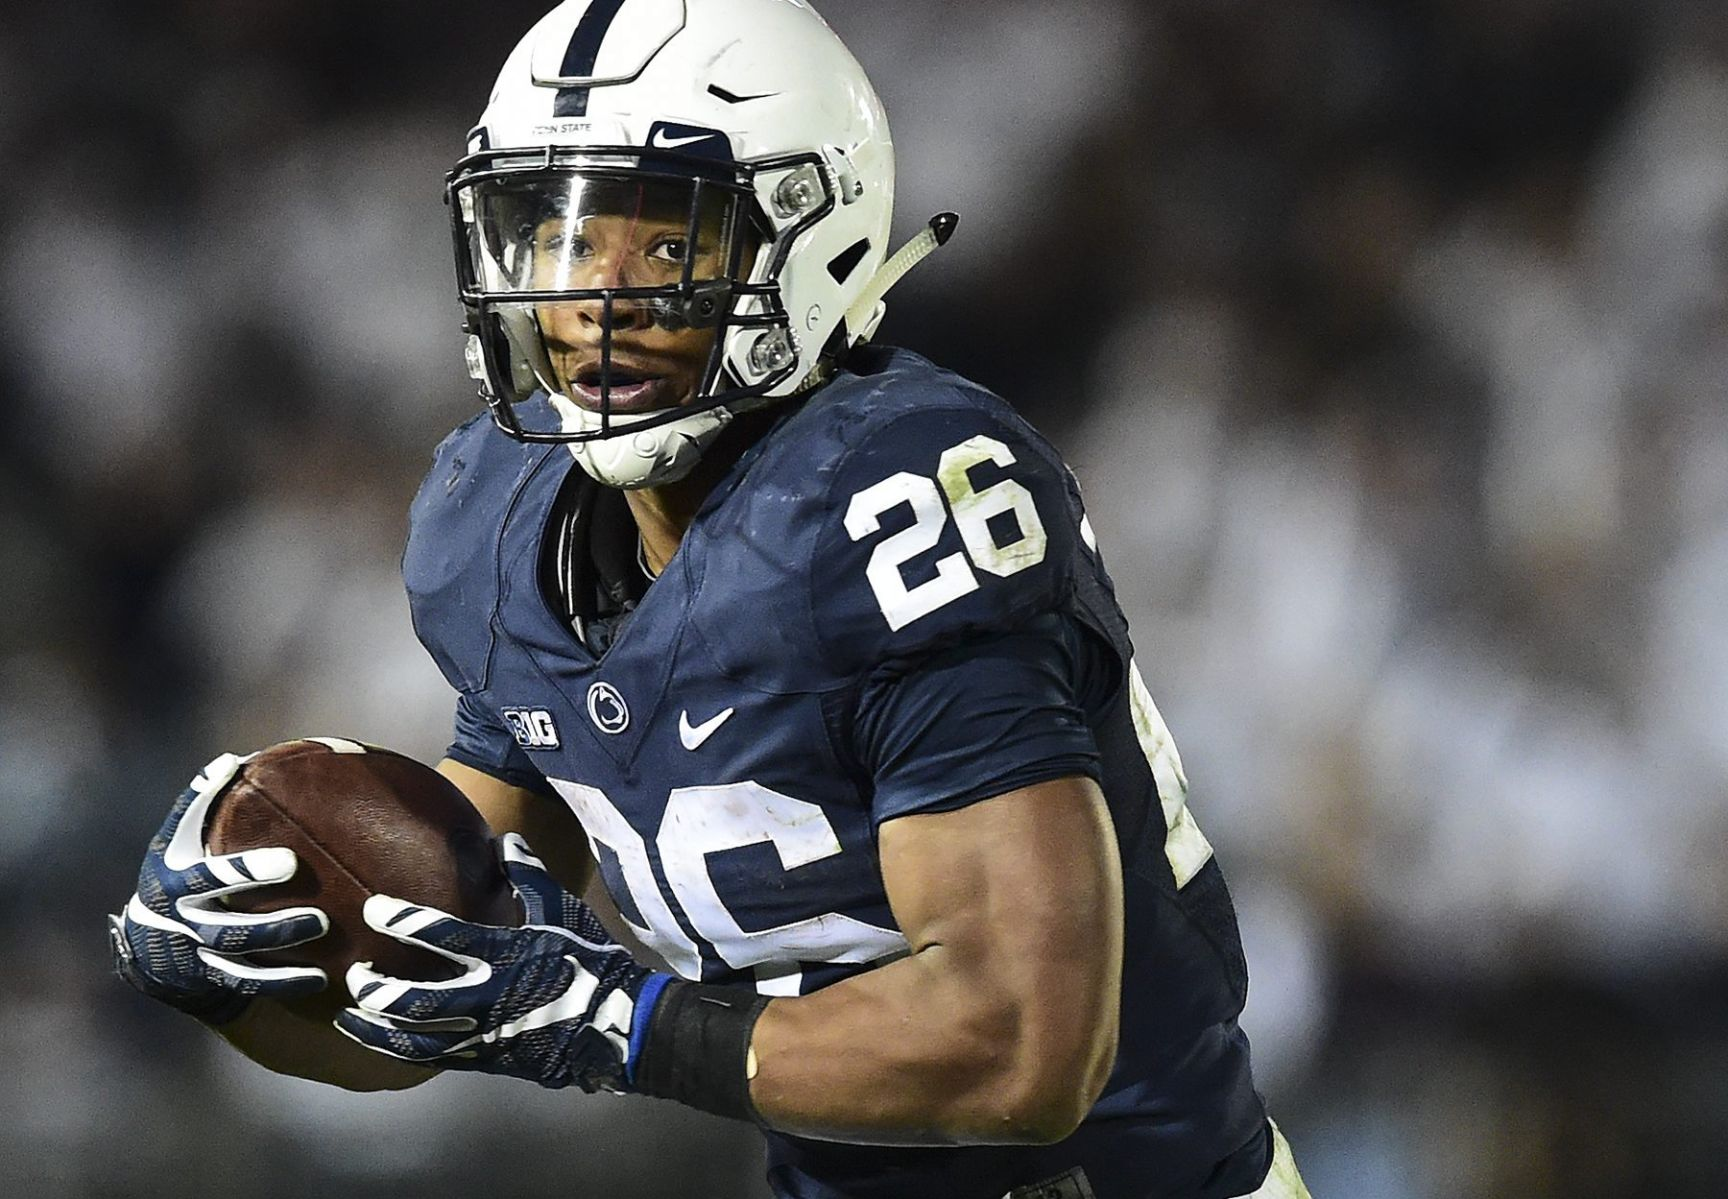 Penn State's James Franklin Gets New 6-Year Deal, Per Report